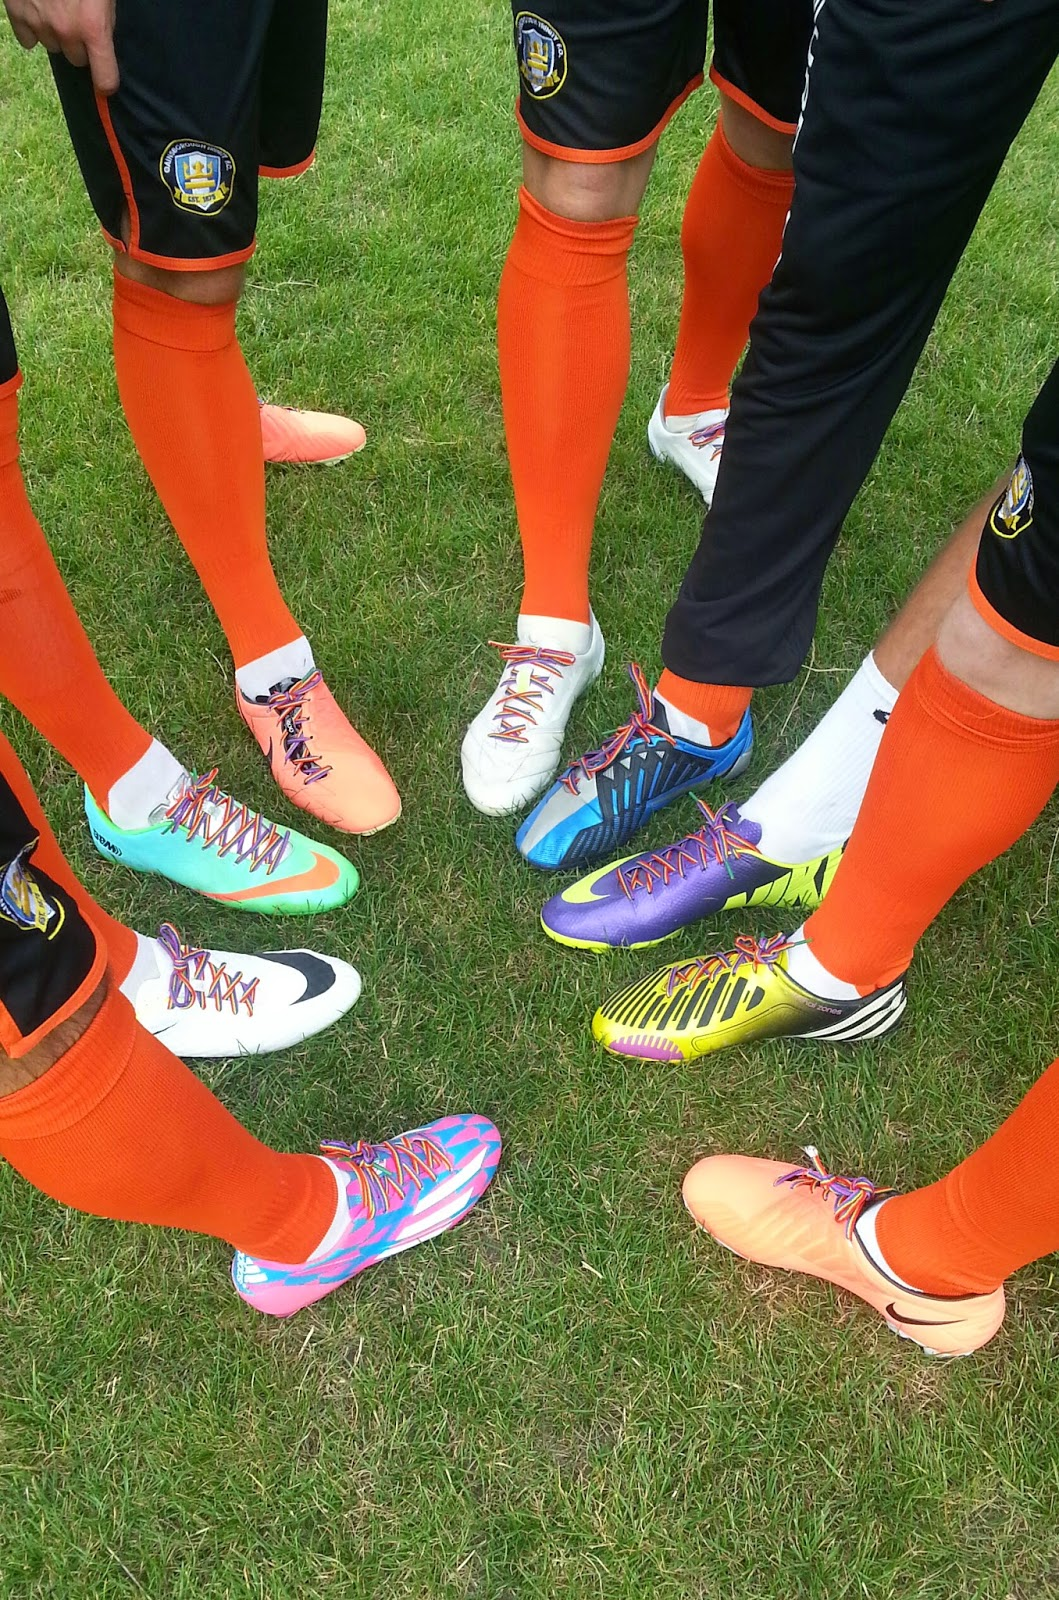 Gainsborough Trinty players pictured with rainbow laces on their boots